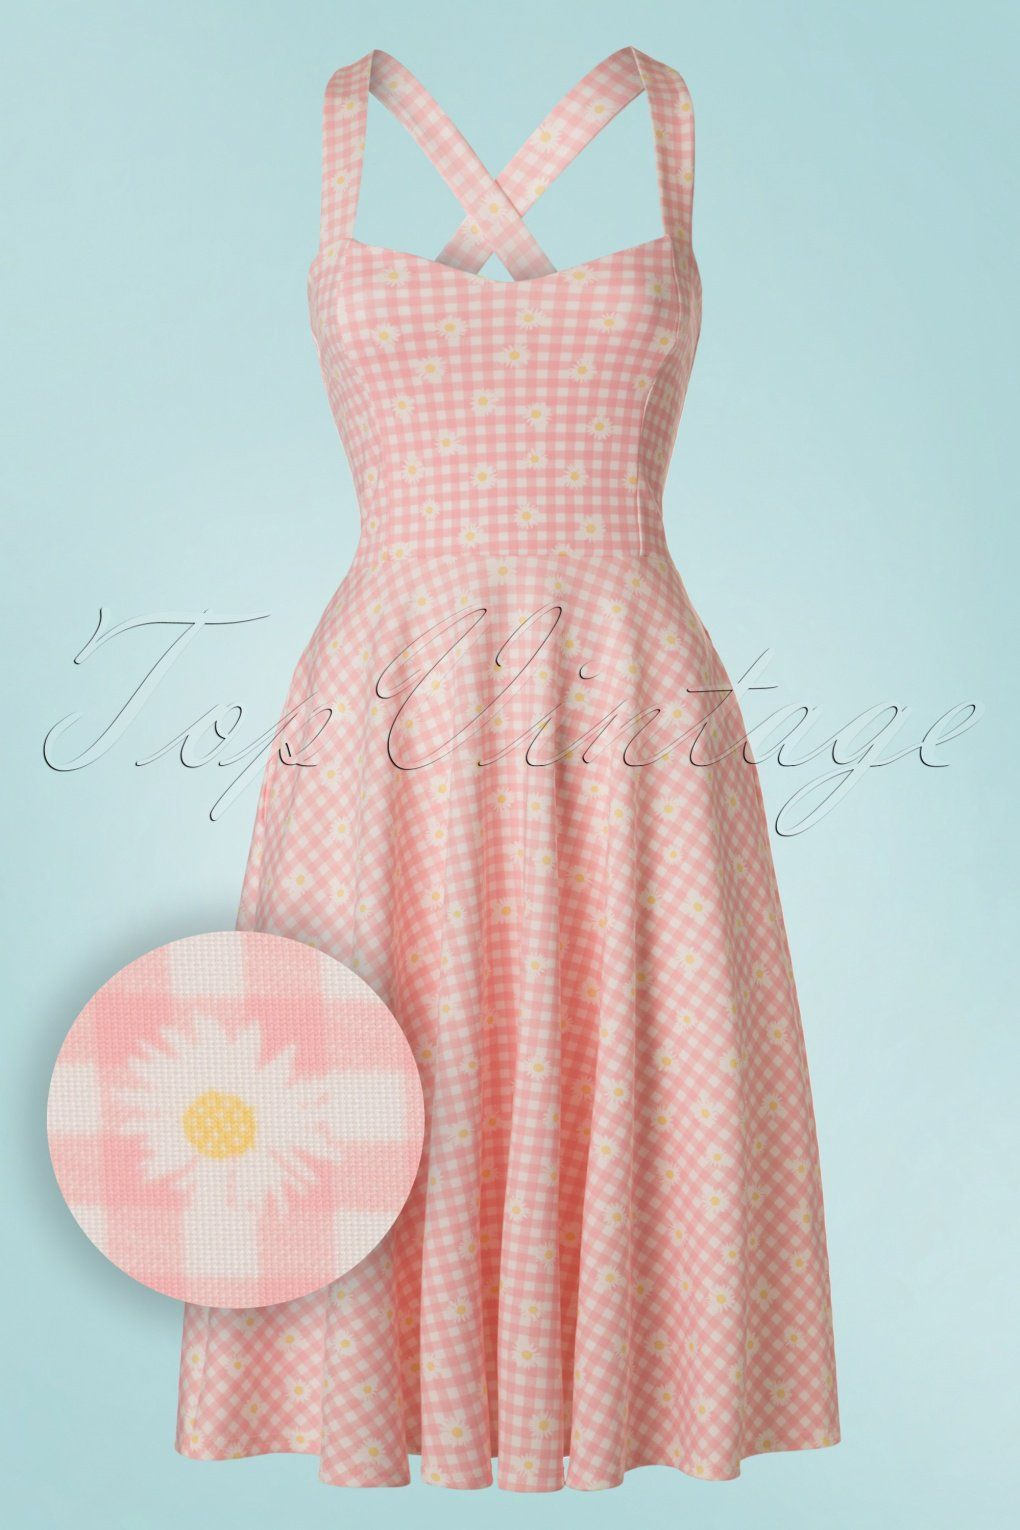 50s Judith Checked Swing Dress In Pink And White Vintage Inspired Fashion Vintage Retro Clothing Vintage Fashion